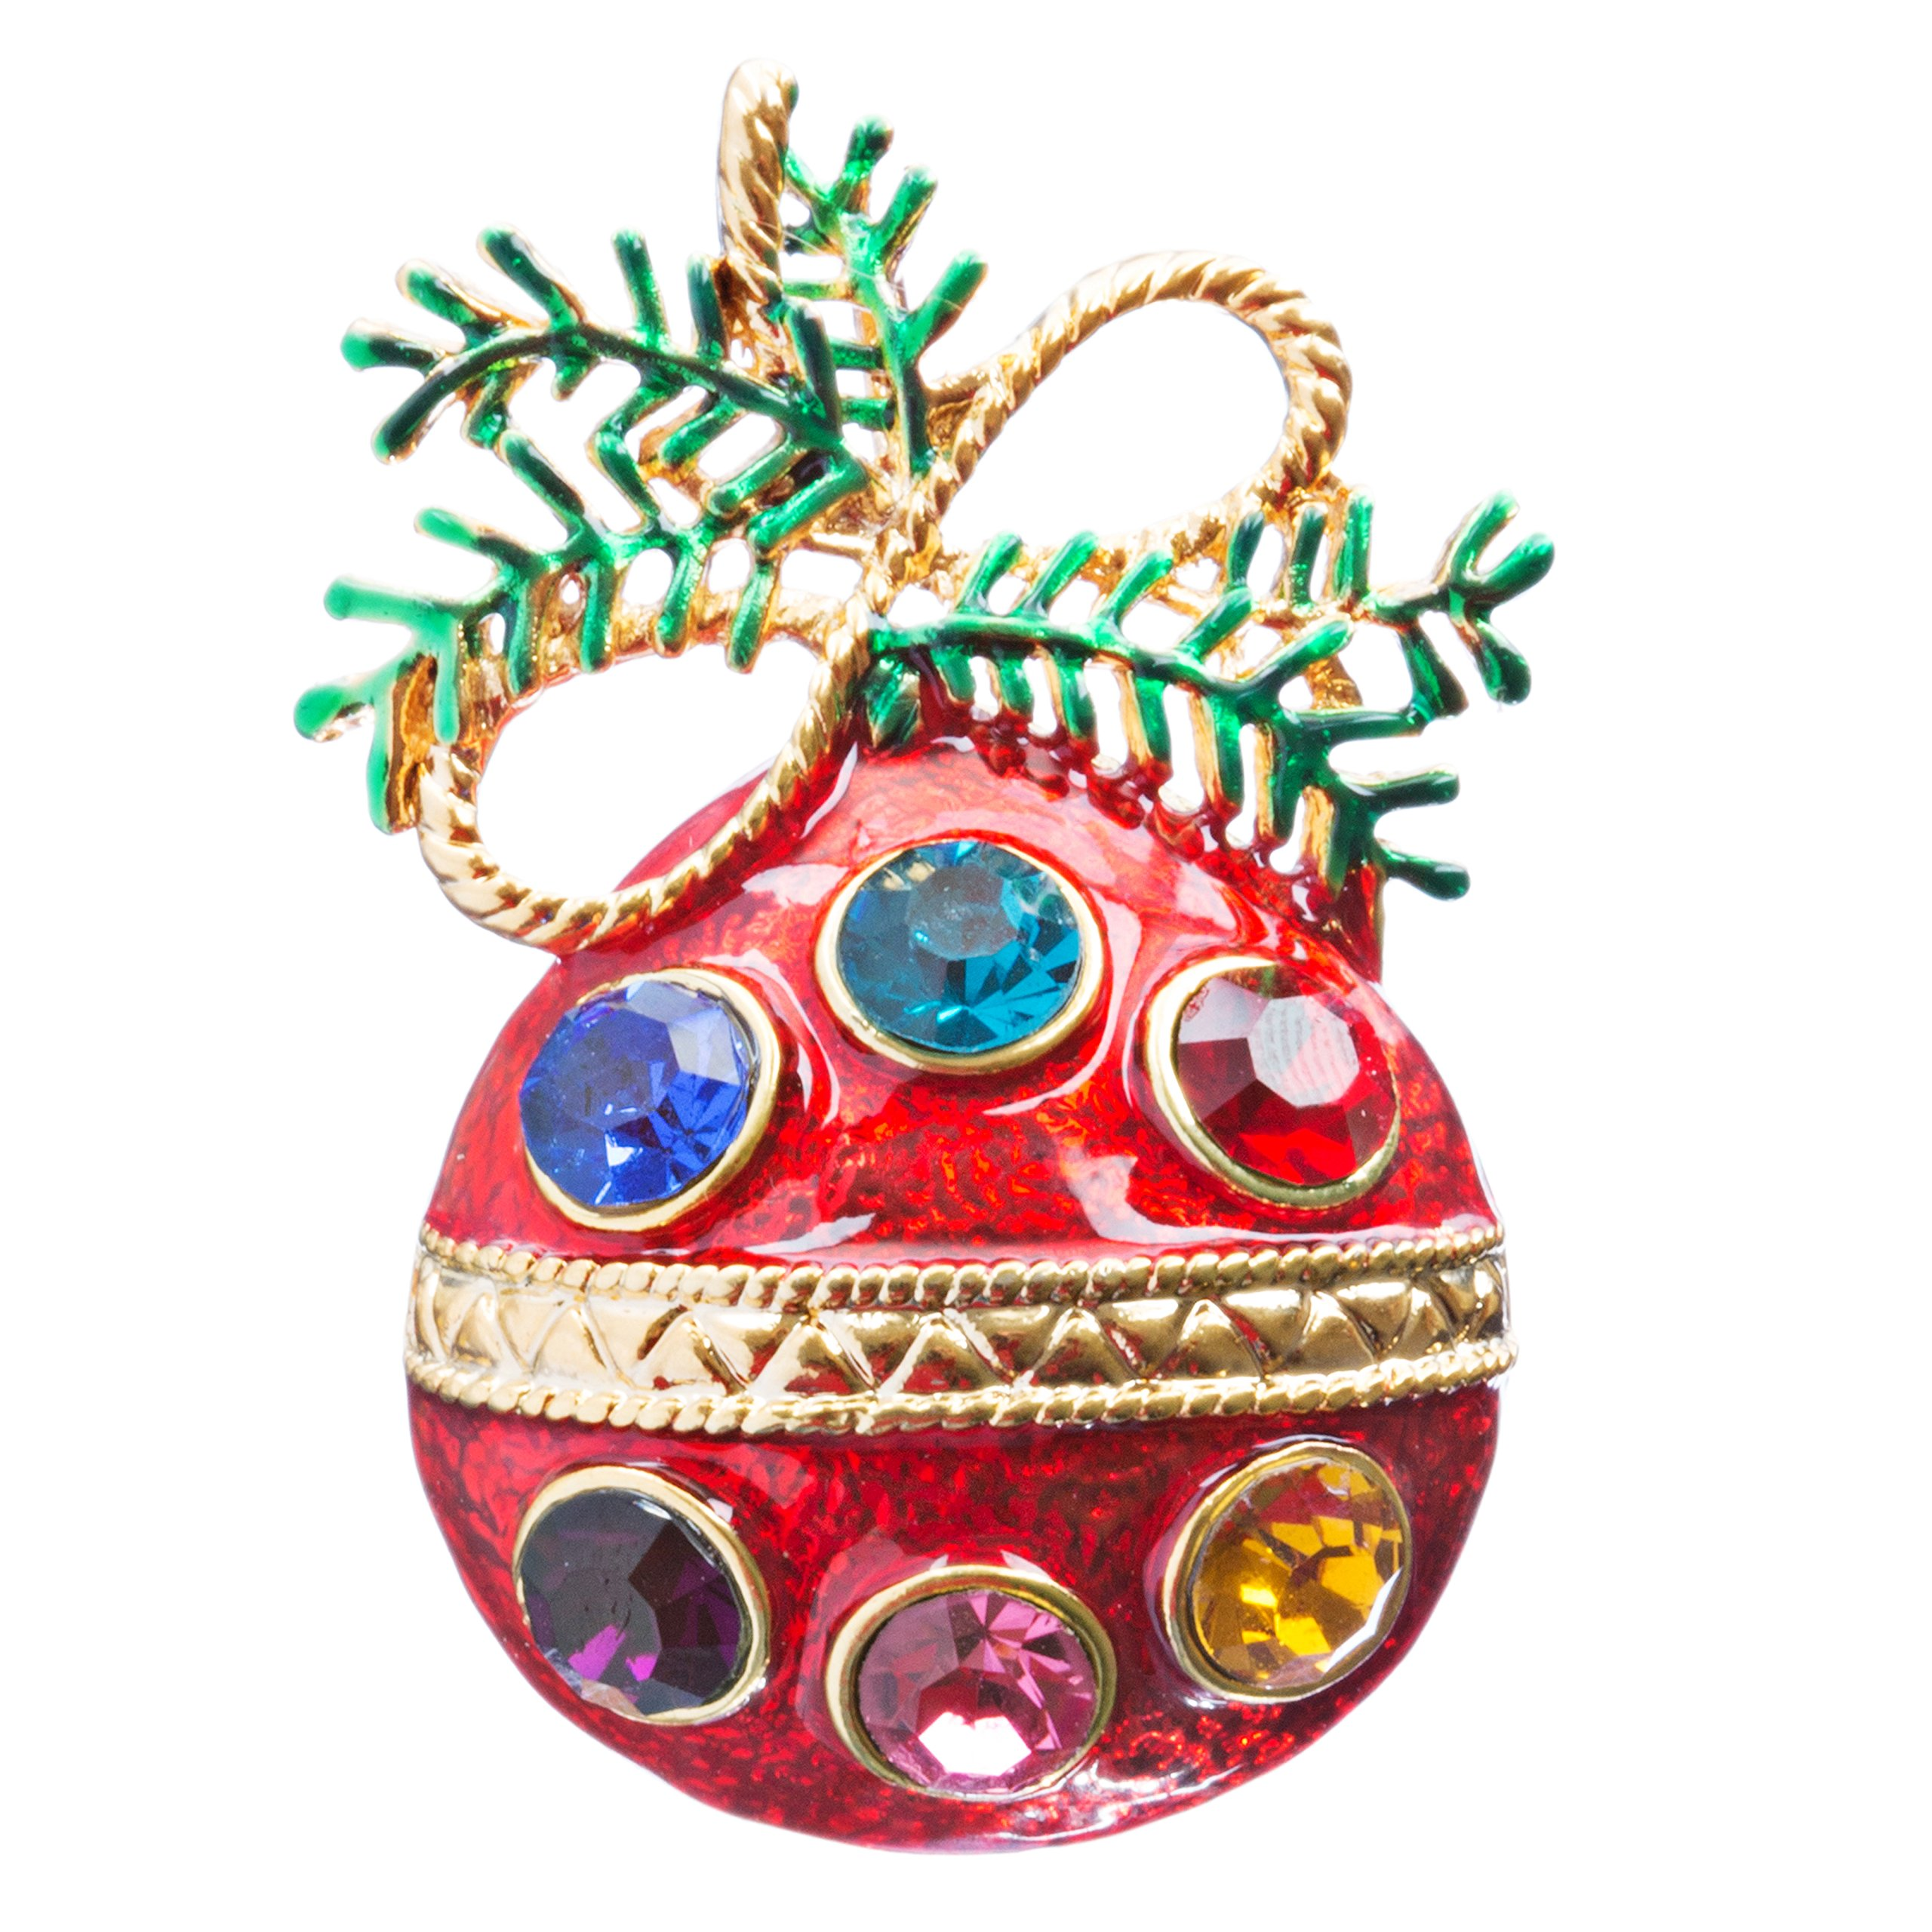 ACCESSORIESFOREVER Christmas Jewelry Crystal Rhinestone Charming Holiday Ball Brooch Pin BH144 MT